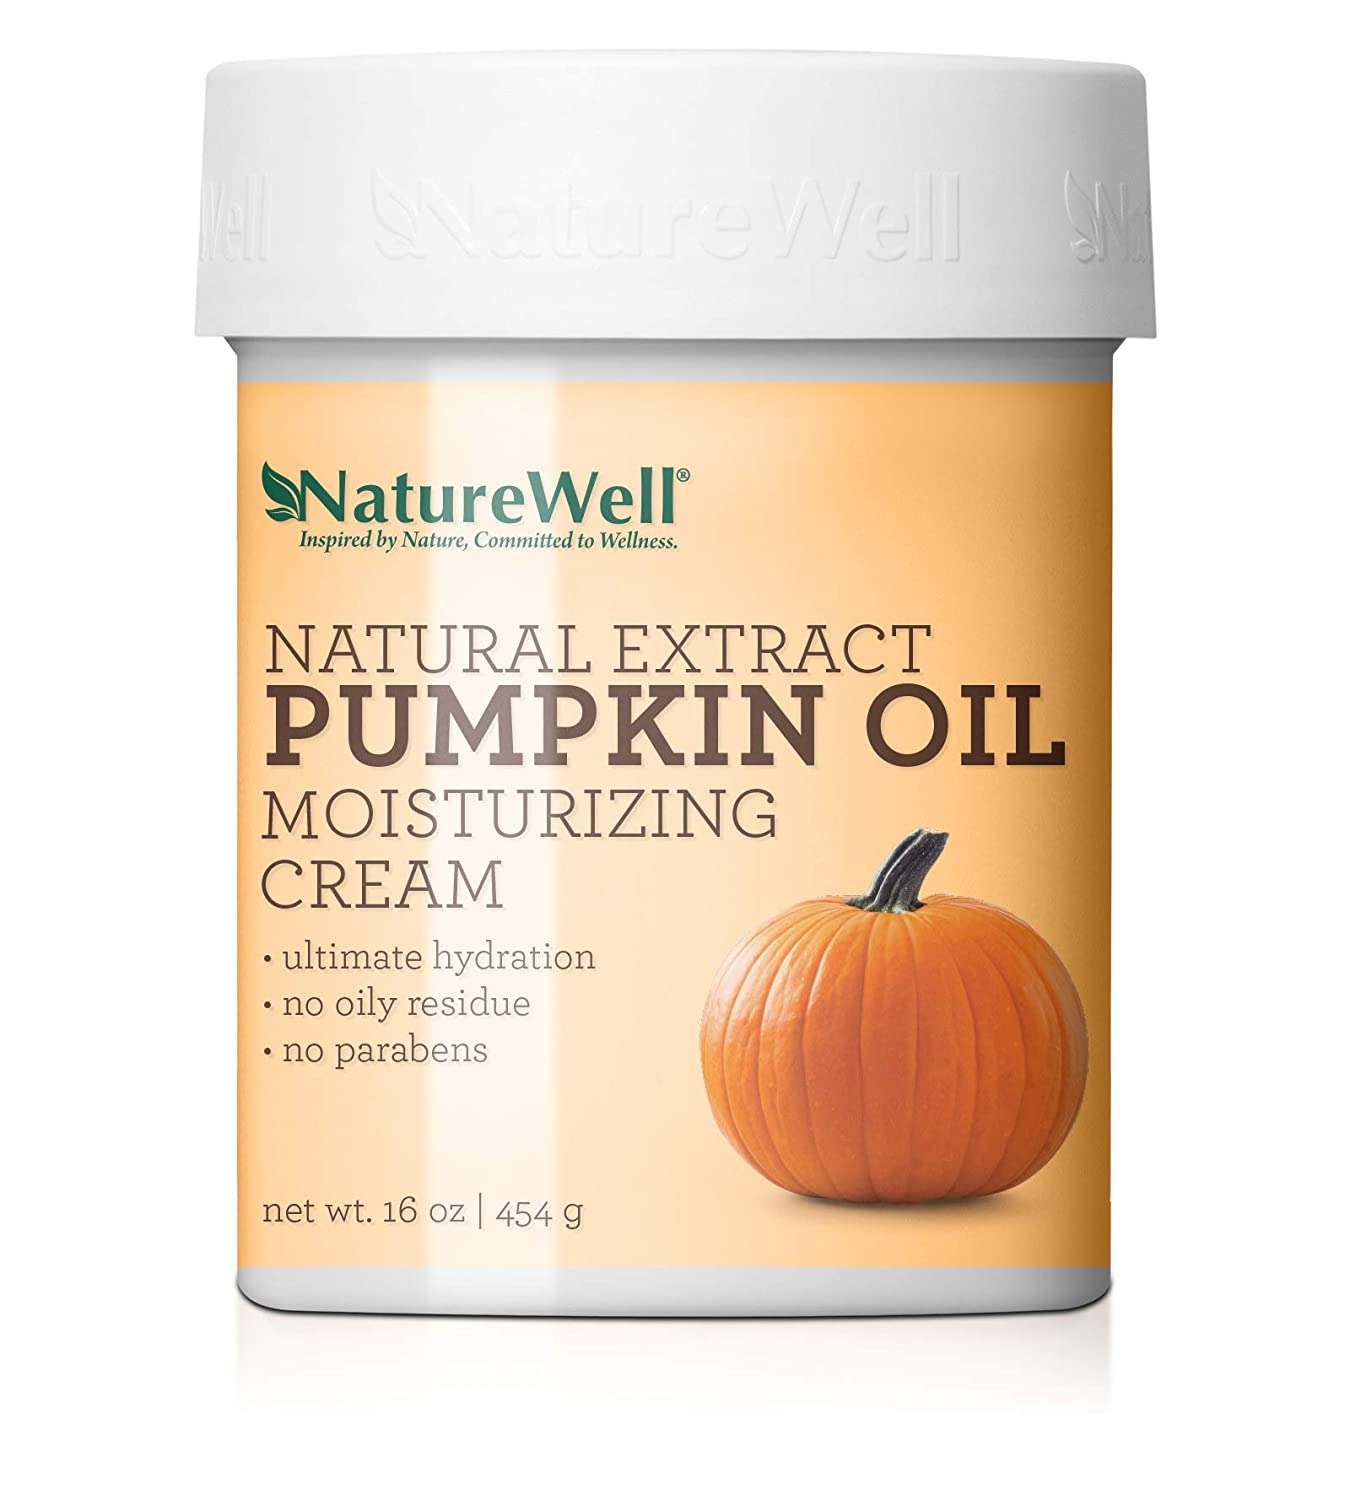 NatureWell Natural Extract Pumpkin Oil Moisturizing Cream for Face & Body, 16 oz. | Provides Ultimate Hydration & Gentle Exfoliation with No Oily Residue